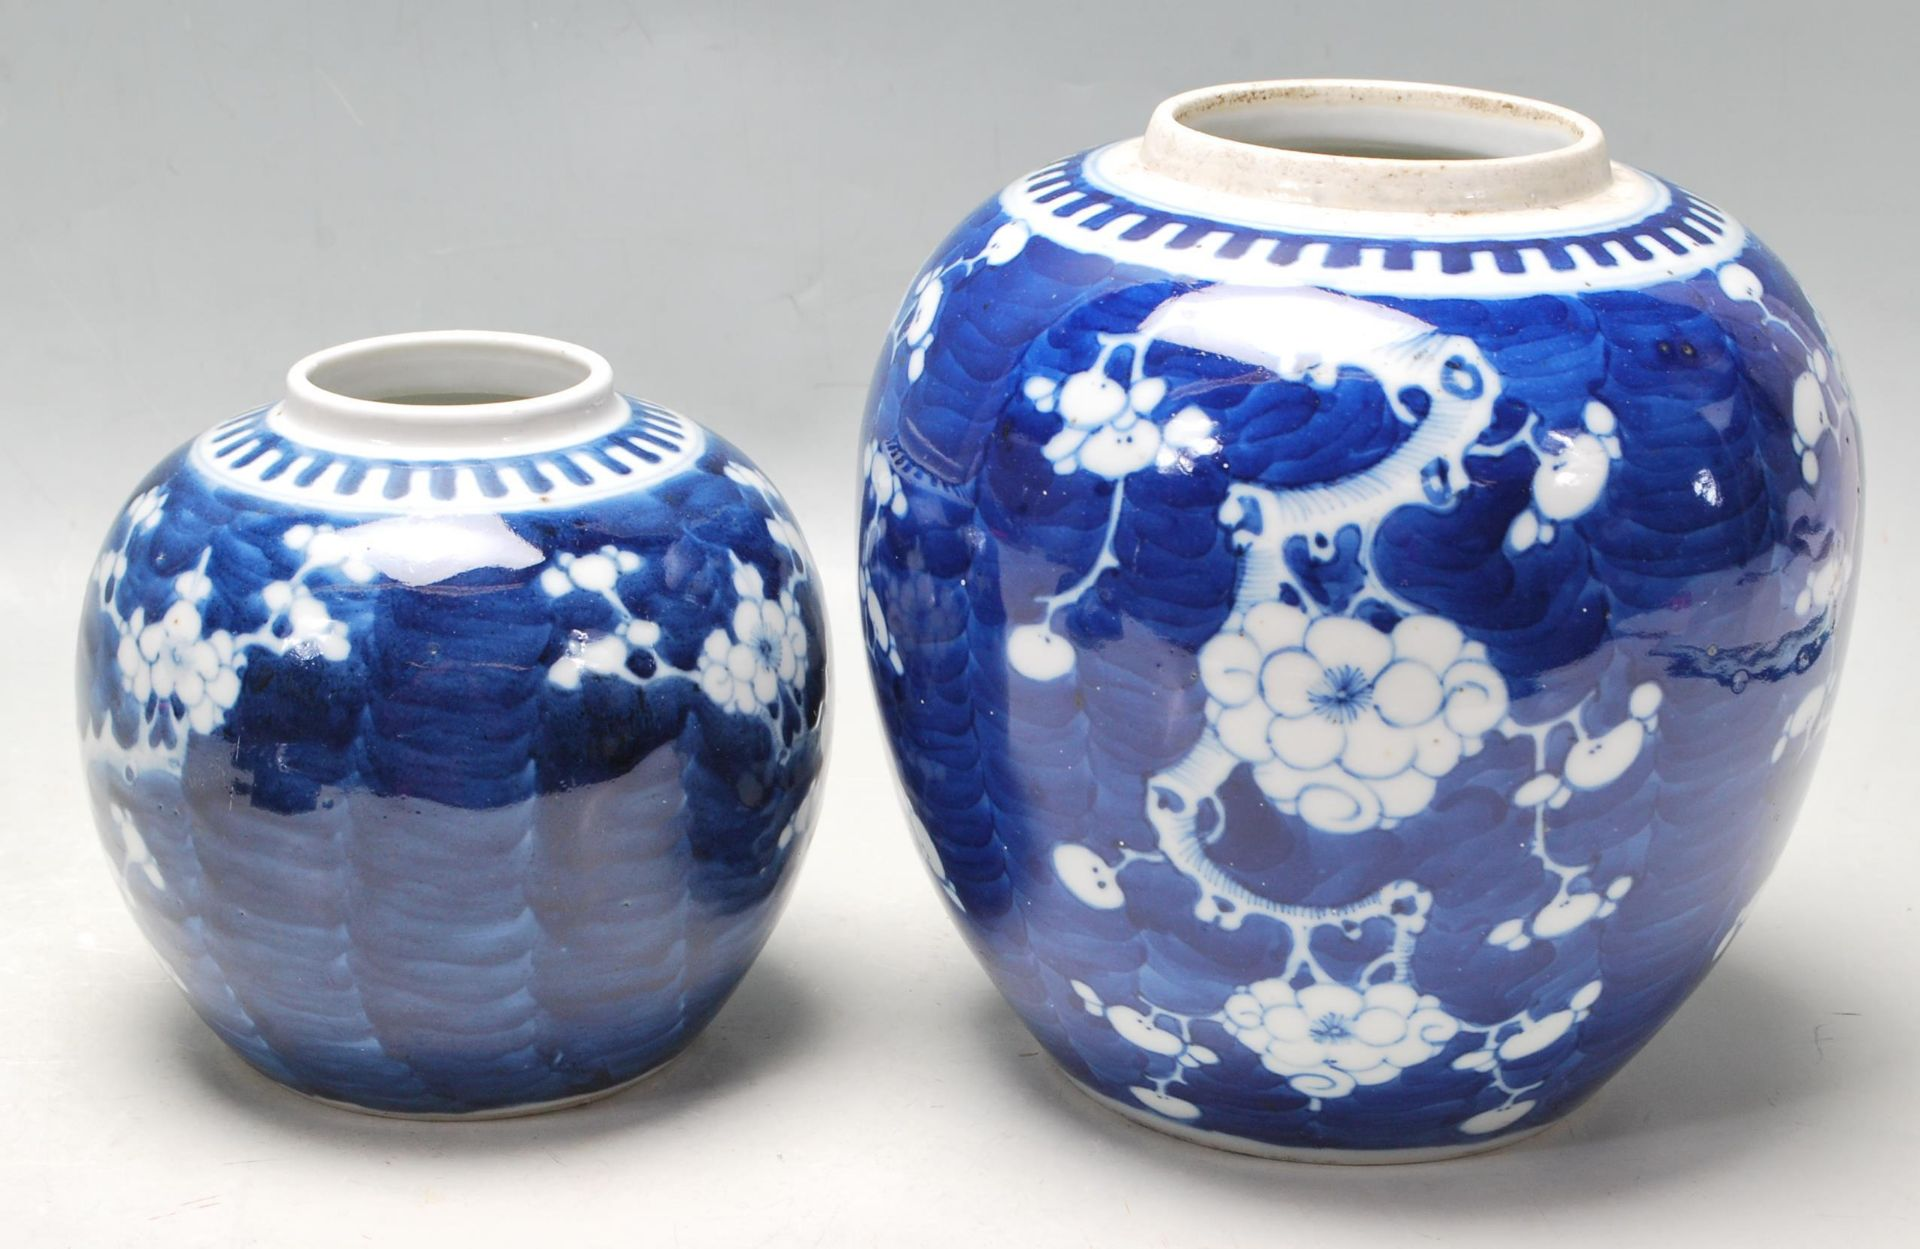 TWO ANTIQUE EARLY 20TH CENTURY CHINESE BLUE AND WHITE GINGER AND JARS - Image 4 of 8